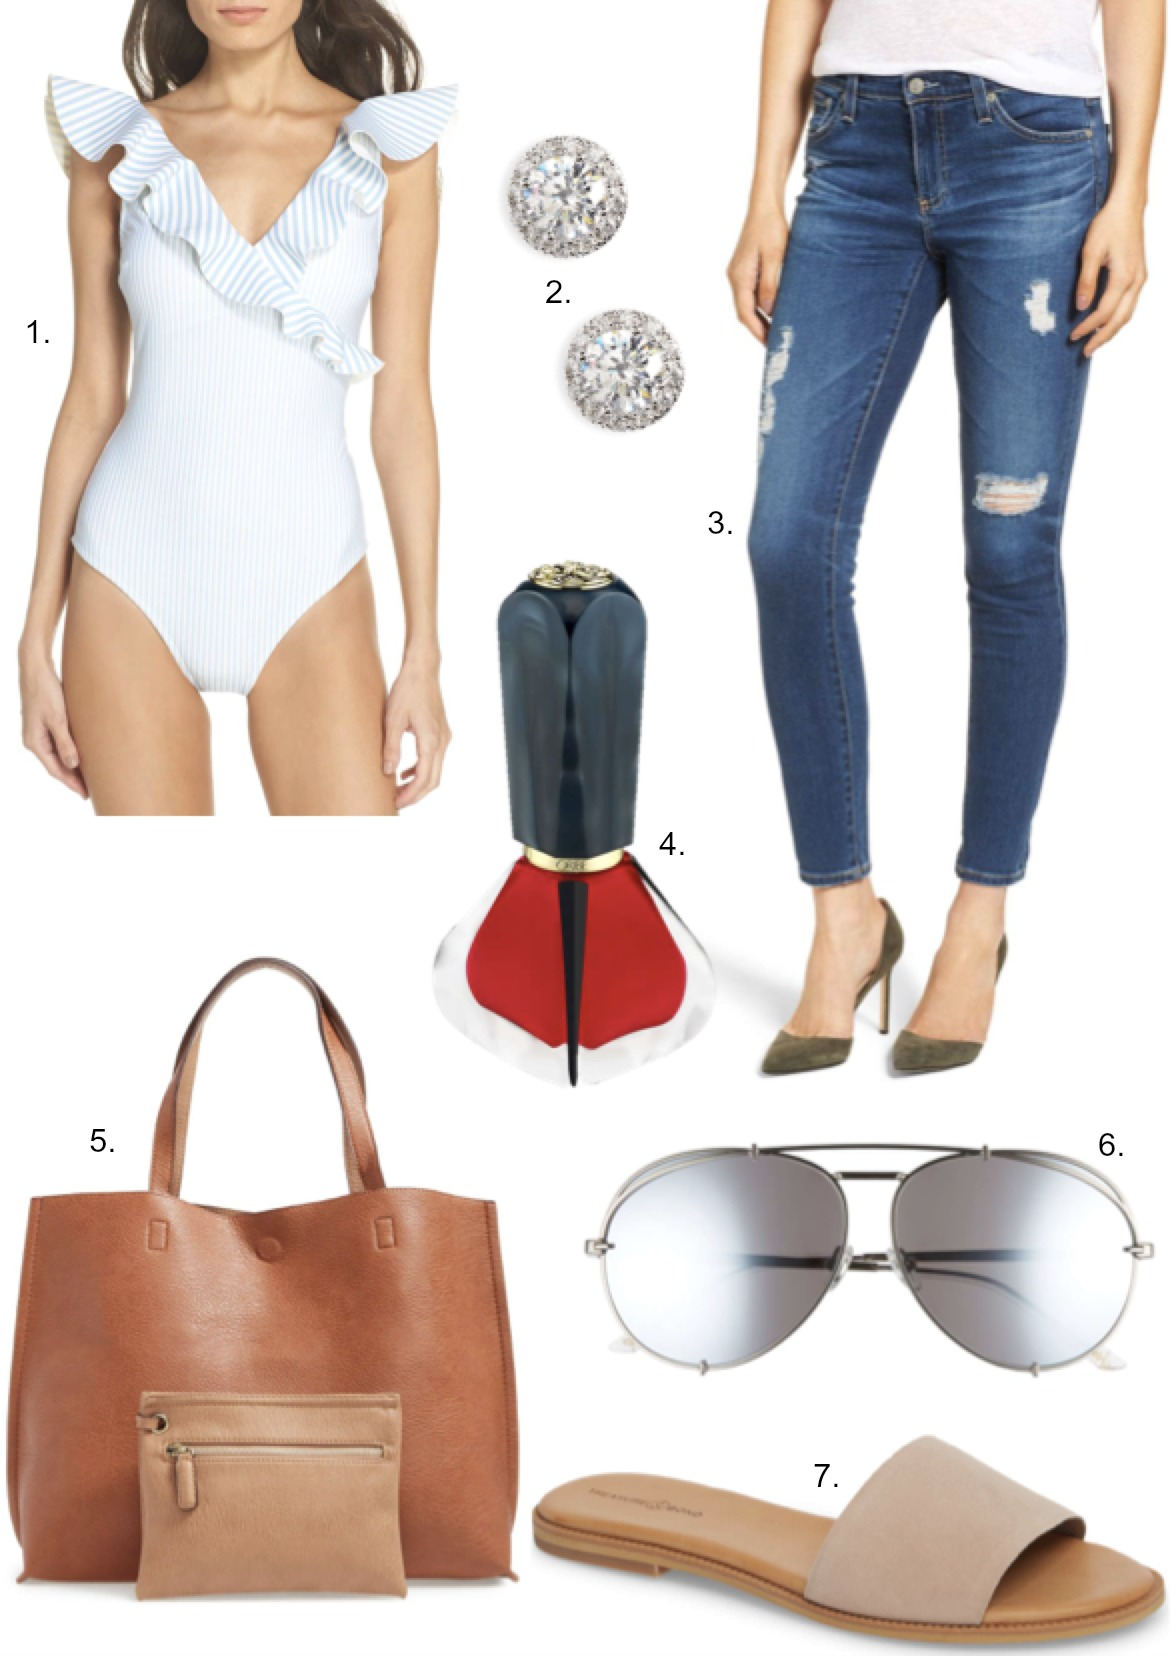 currently covet diff khlow koko sunglasses Treasure & Bond Mere Flat Slide Sandals Street Level Reversible Tote Bag fashion blogger outfit ideas | Cute Summer Sandals and Swimwear featured by popular US style blogger, Style Elixir